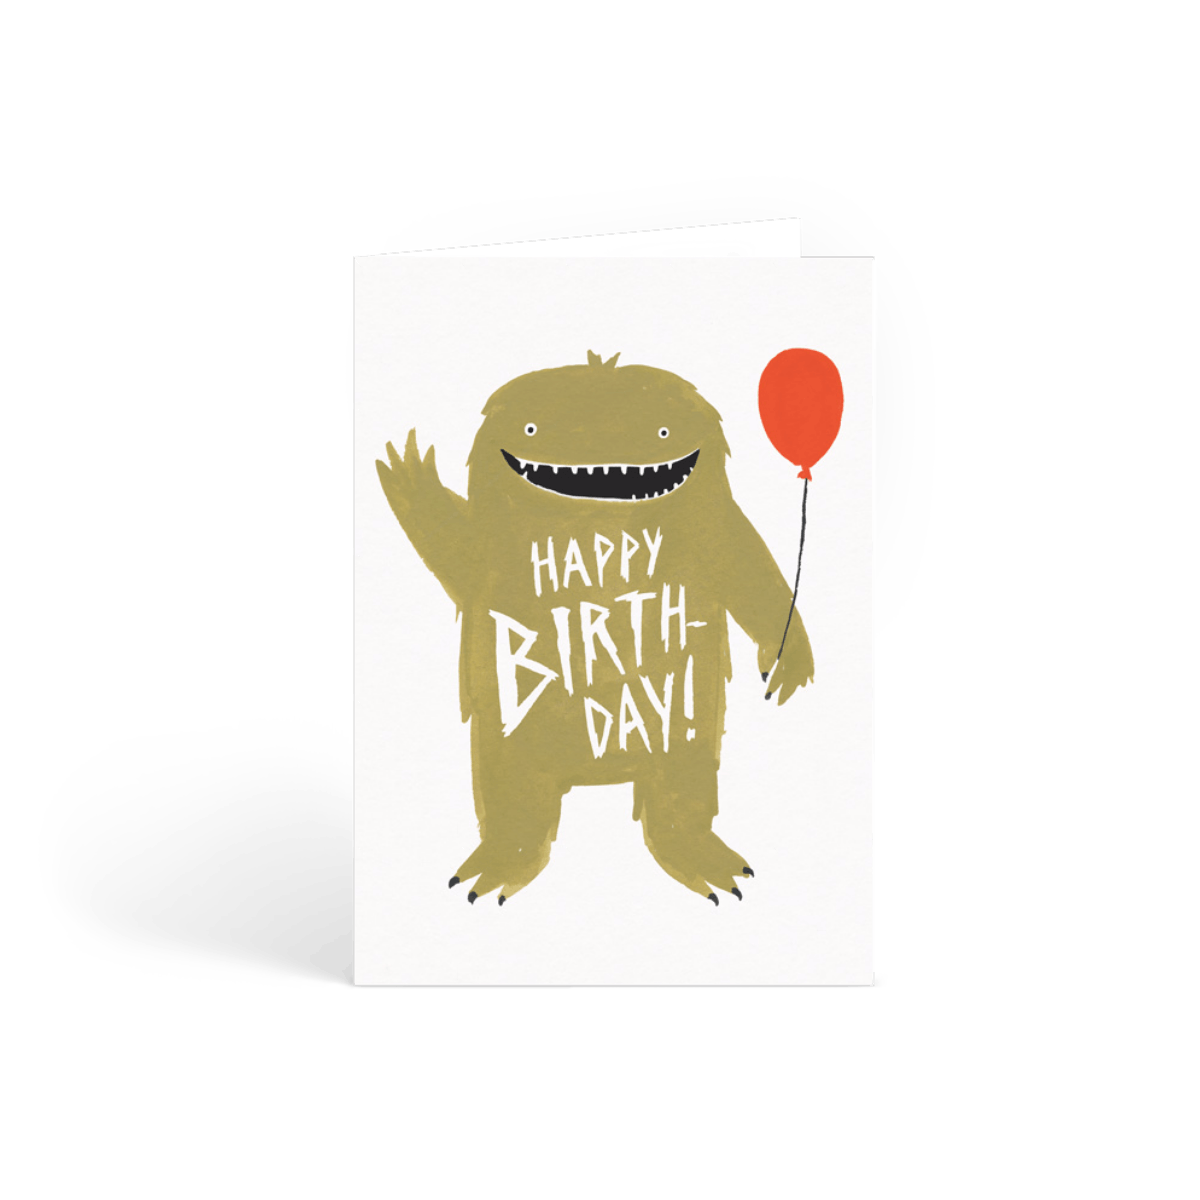 Https%3a%2f%2fwww.papier.com%2fproduct image%2f10756%2f2%2fmonster birthday 2741 front 1473262359.png?ixlib=rb 1.1